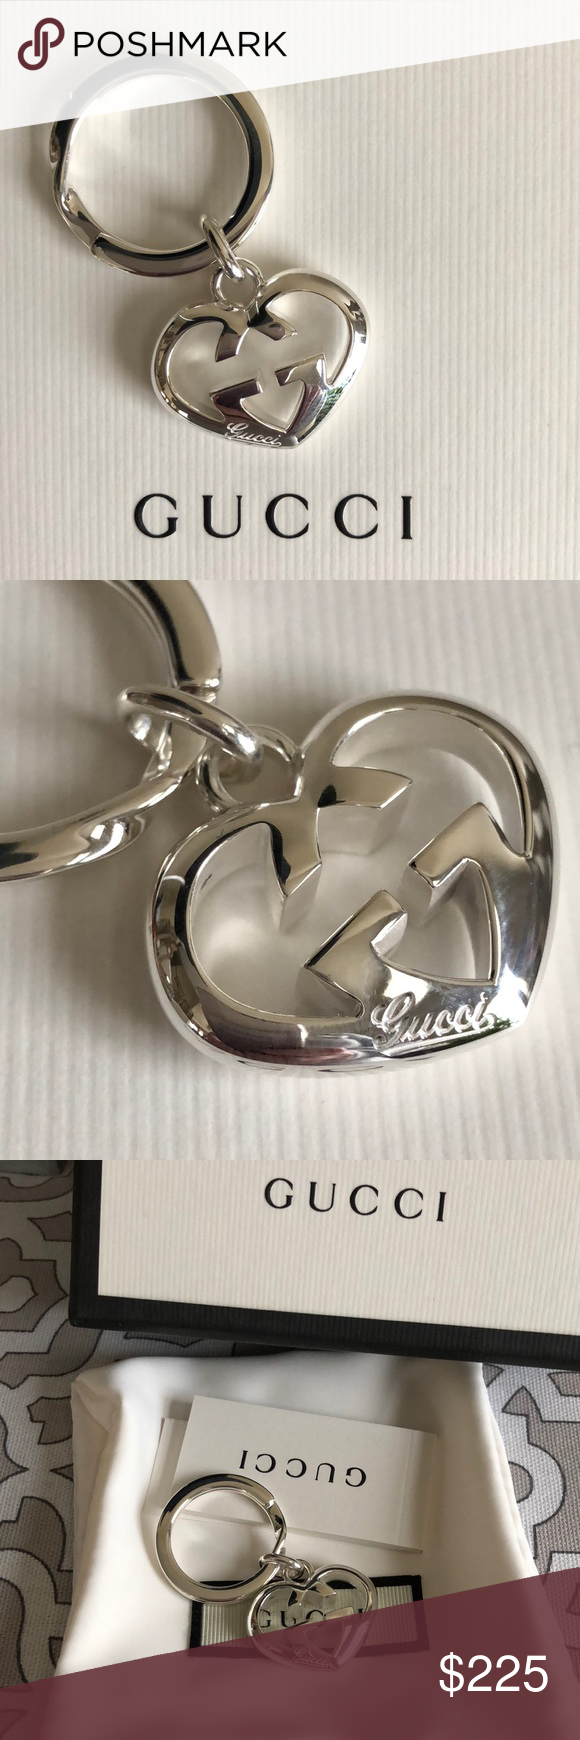 f0e1fee3df9a5 GUCCI ❤ Love Britt Sterling Silver Key Chain ❤ GUCCI •Authentic• Keyring  Sterling Silver Brand New and includes box and jewelry pouch Would make a  ...